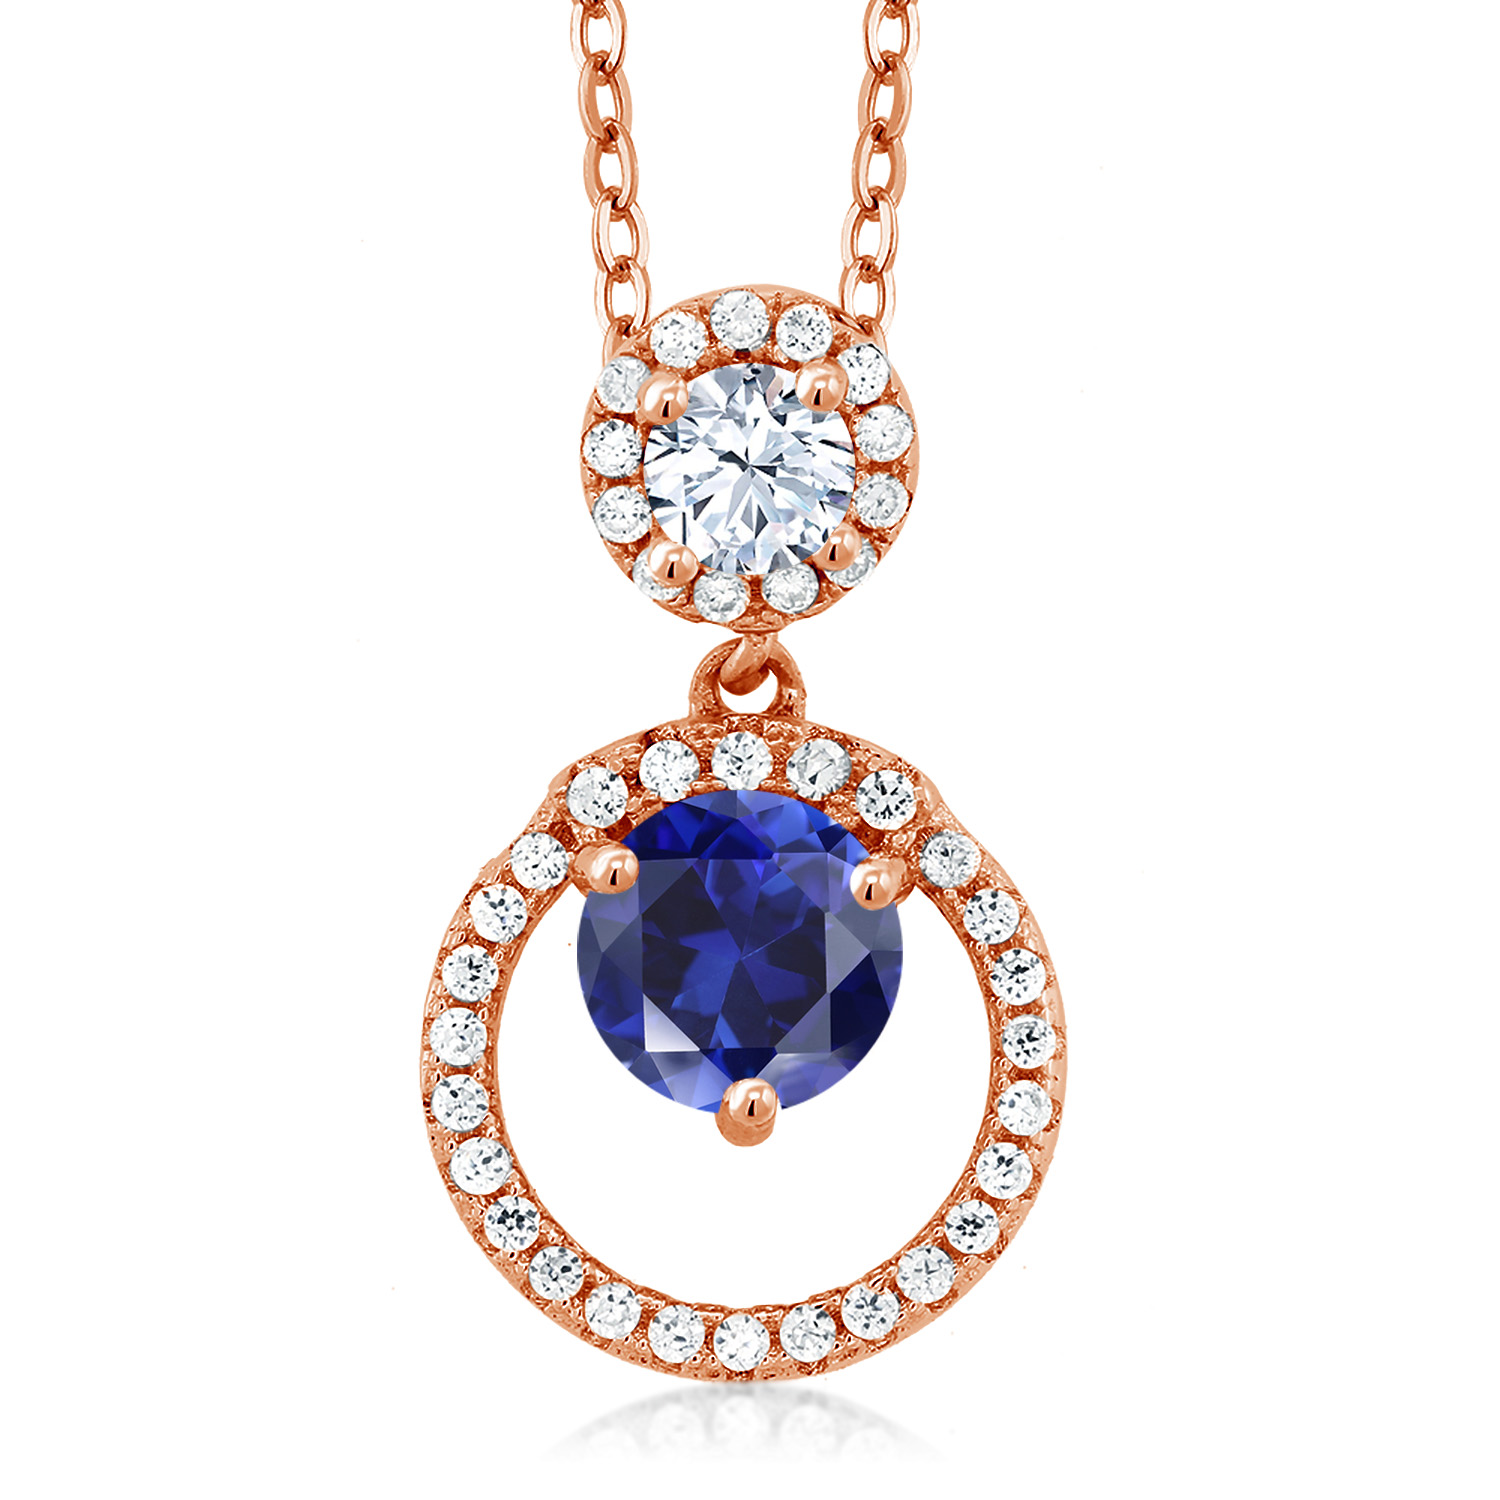 Gem Stone King 1.02 Ct Oval Blue Sapphire 18K Rose Gold Plated Silver Pendant With Chain